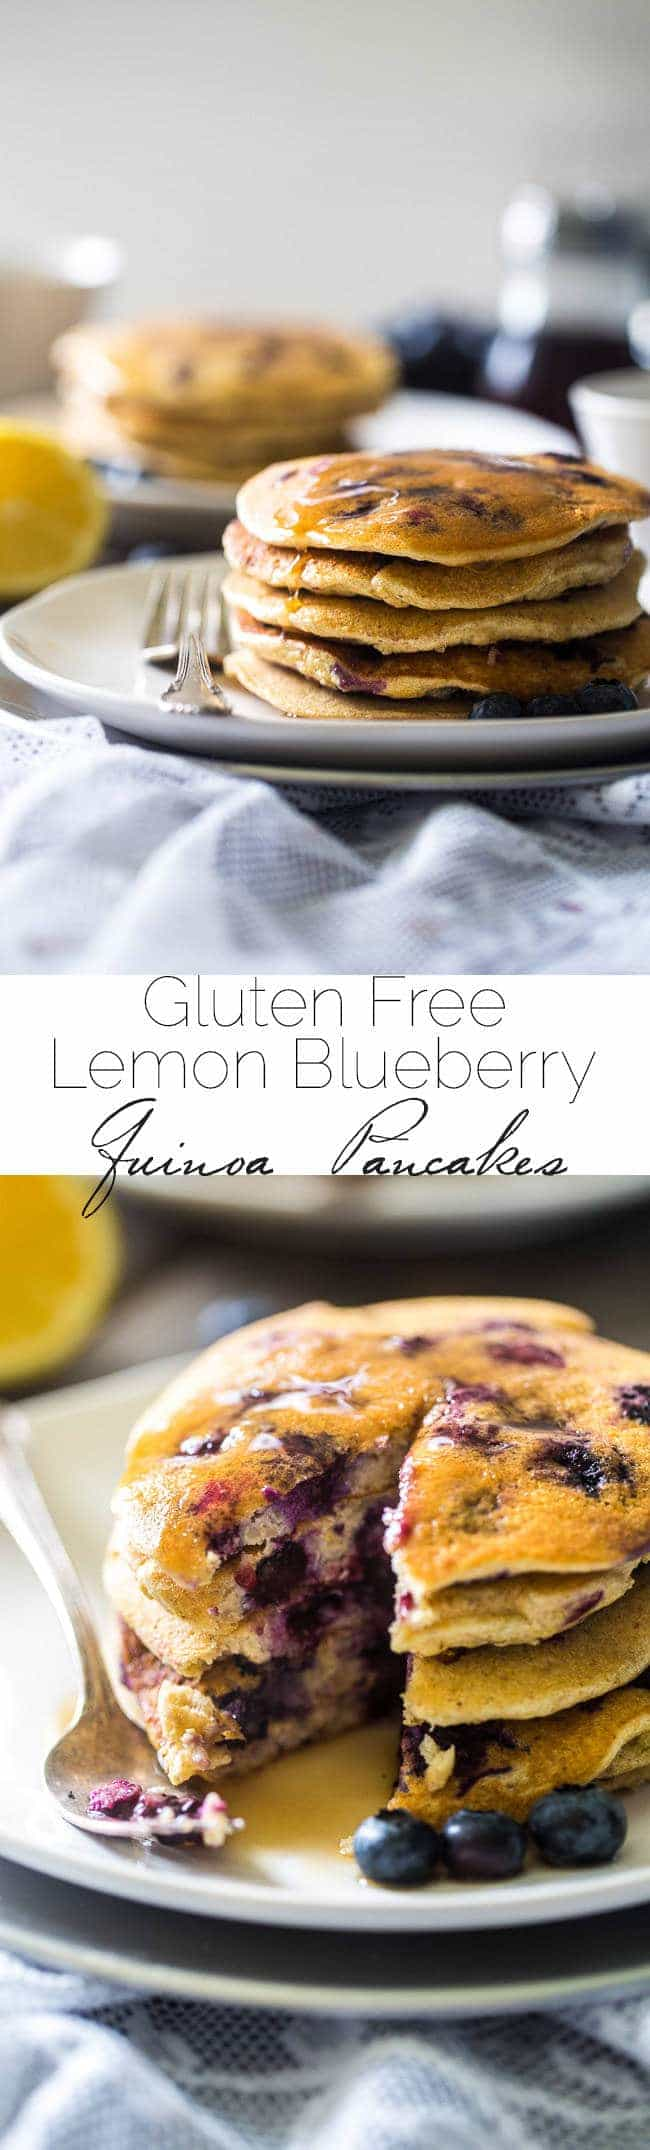 Quinoa Blueberry Lemon Gluten Free Pancakes - Made with Greek yogurt for a healthy breakfast that is packed with protein and perfect for Spring! | Foodfaithfitness.com | @FoodFaithFit